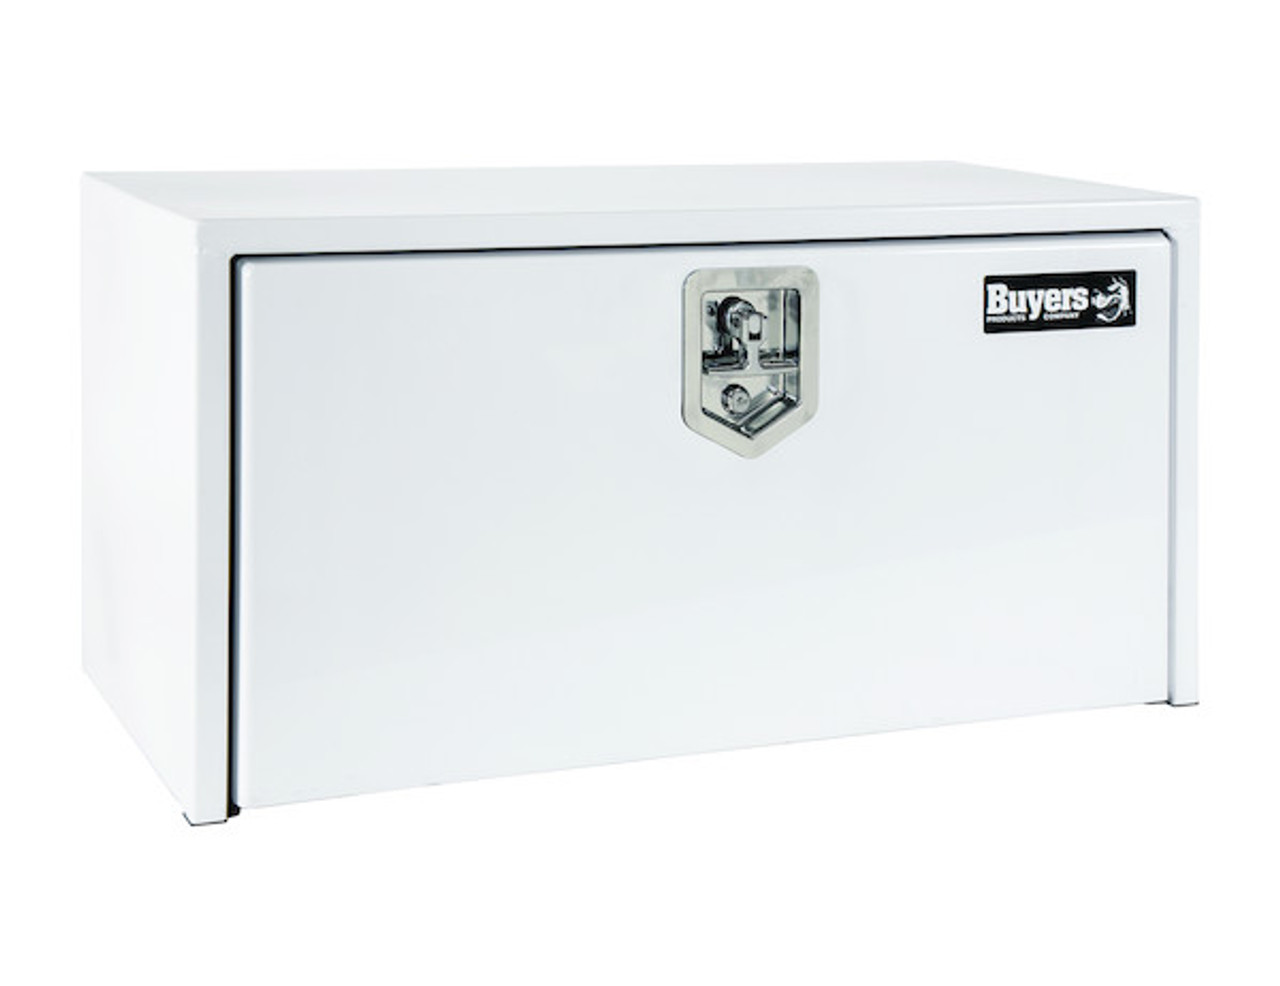 "1703403 BUYERS PRODUCTS WHITE STEEL UNDERBODY TRUCK TOOLBOX 14""HX16""DX30""W"